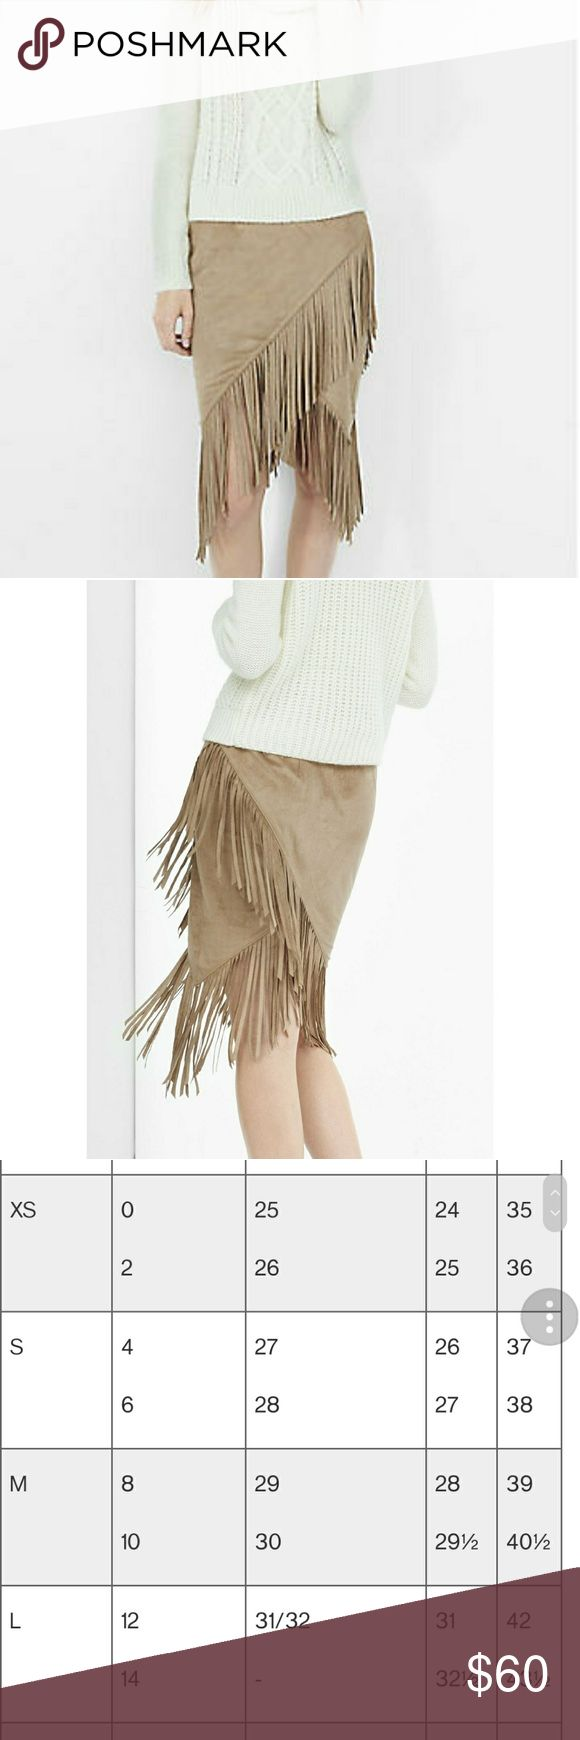 """Express Faux Suede Fringe Wrap Pencil Skirt Brand new with tags (BNWT), only worn to try on. Size 6  A supple, faux suede wrap skirt with ample, eight-inch fringe that swishes when you walk. Keep it simple and sexy with a shape-skimming ribbed sweater or go for a fully Southwestern vibe with a cami and denim jacket.  High waisted Hidden hook and zipper on side 8"""" fringe embellishment Wrap hem; LinedPolyester/Spandex body; Polyester lining Machine wash Express Skirts"""